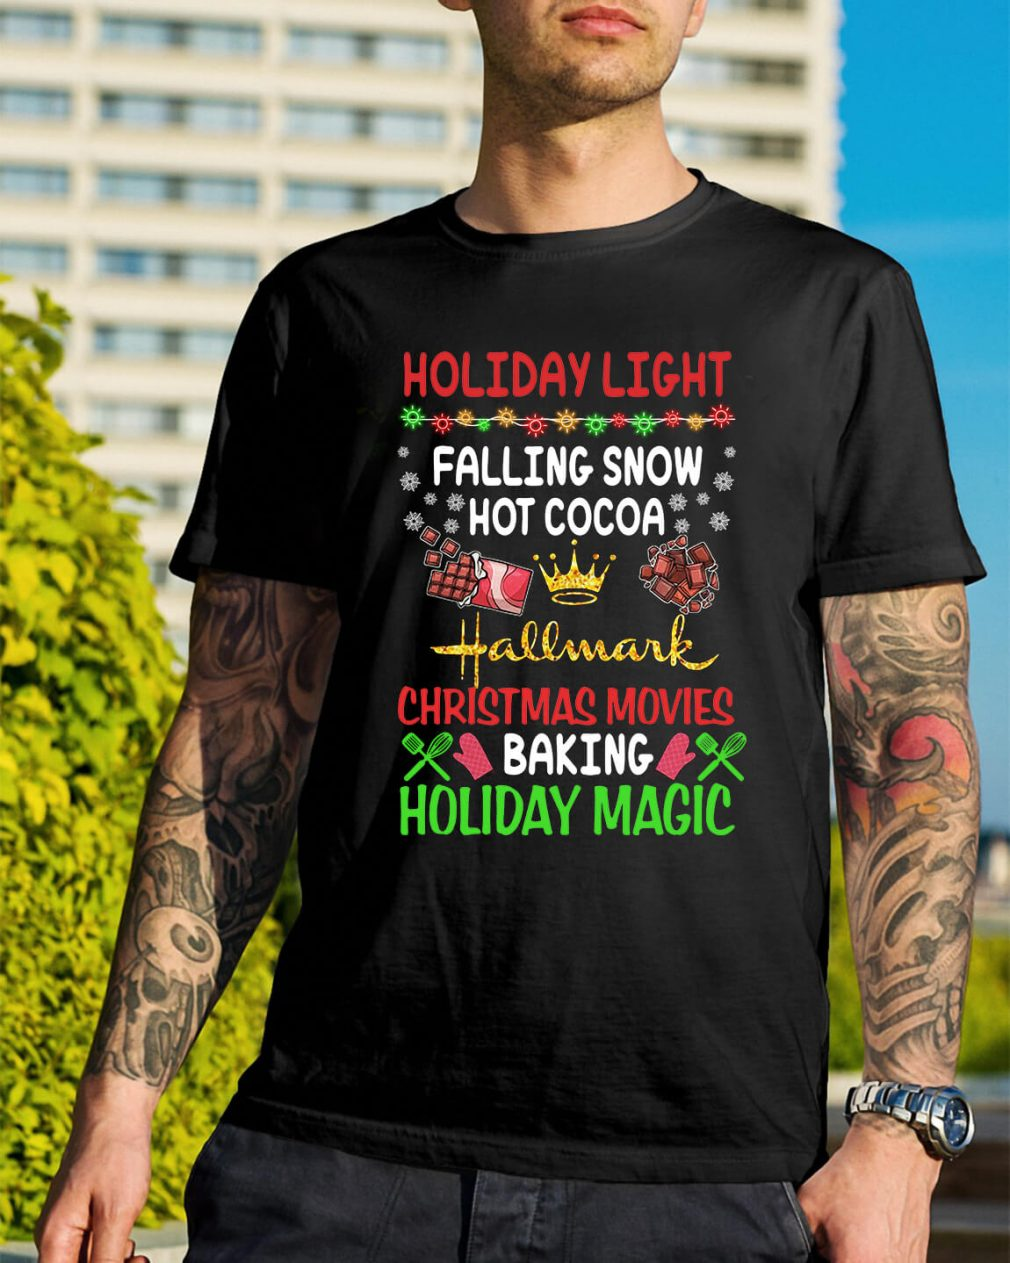 Holiday light falling snow hot cocoa Hallmark Christmas movies shirt